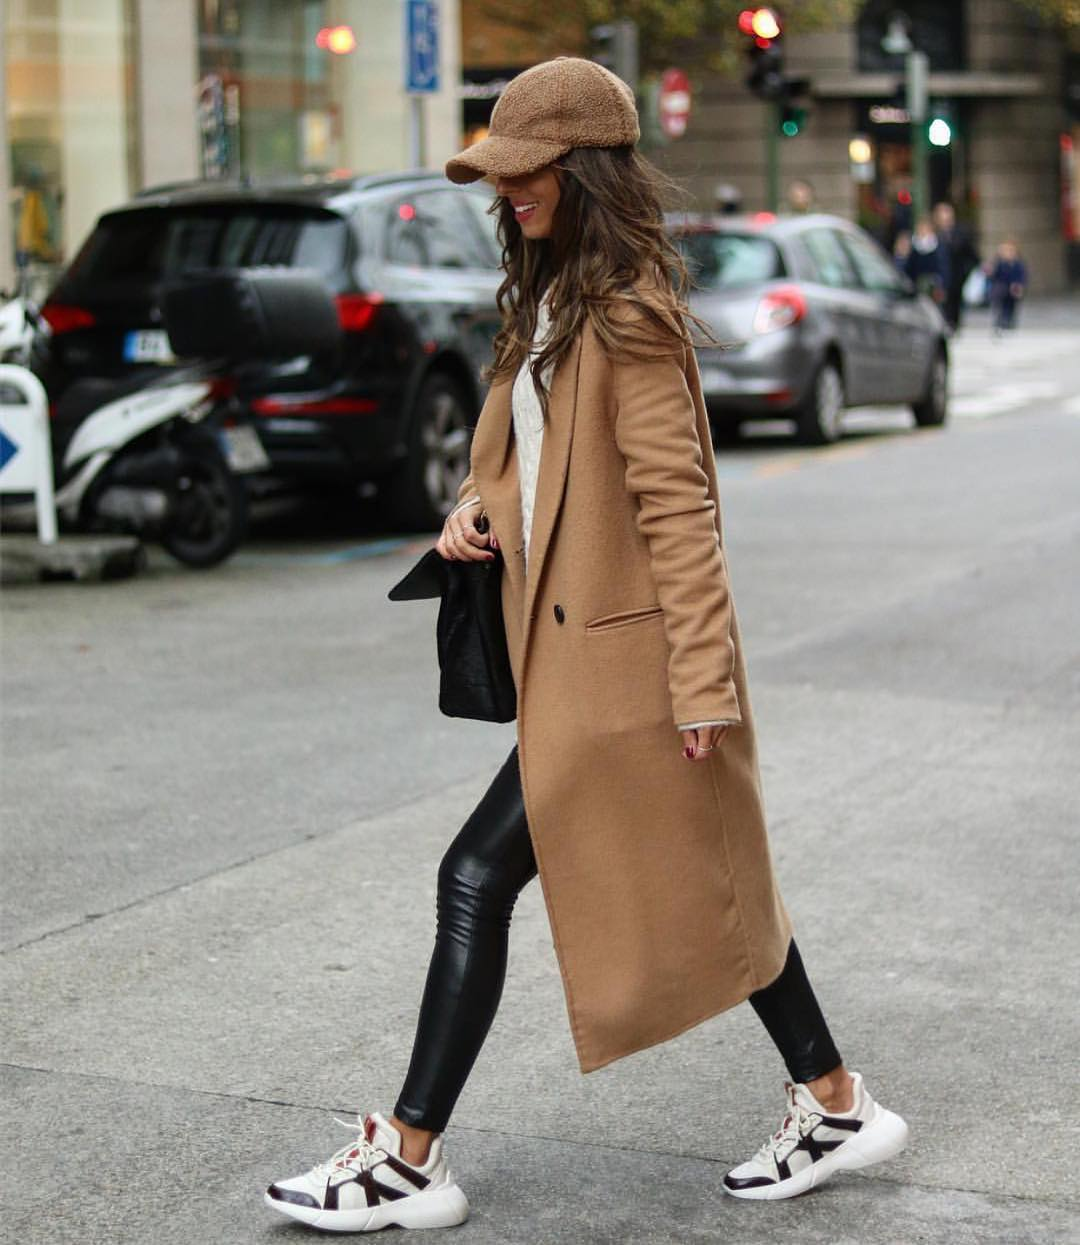 Camel Coat With Black Leather Pants And Chunky Sneakers In White For Fall 2019